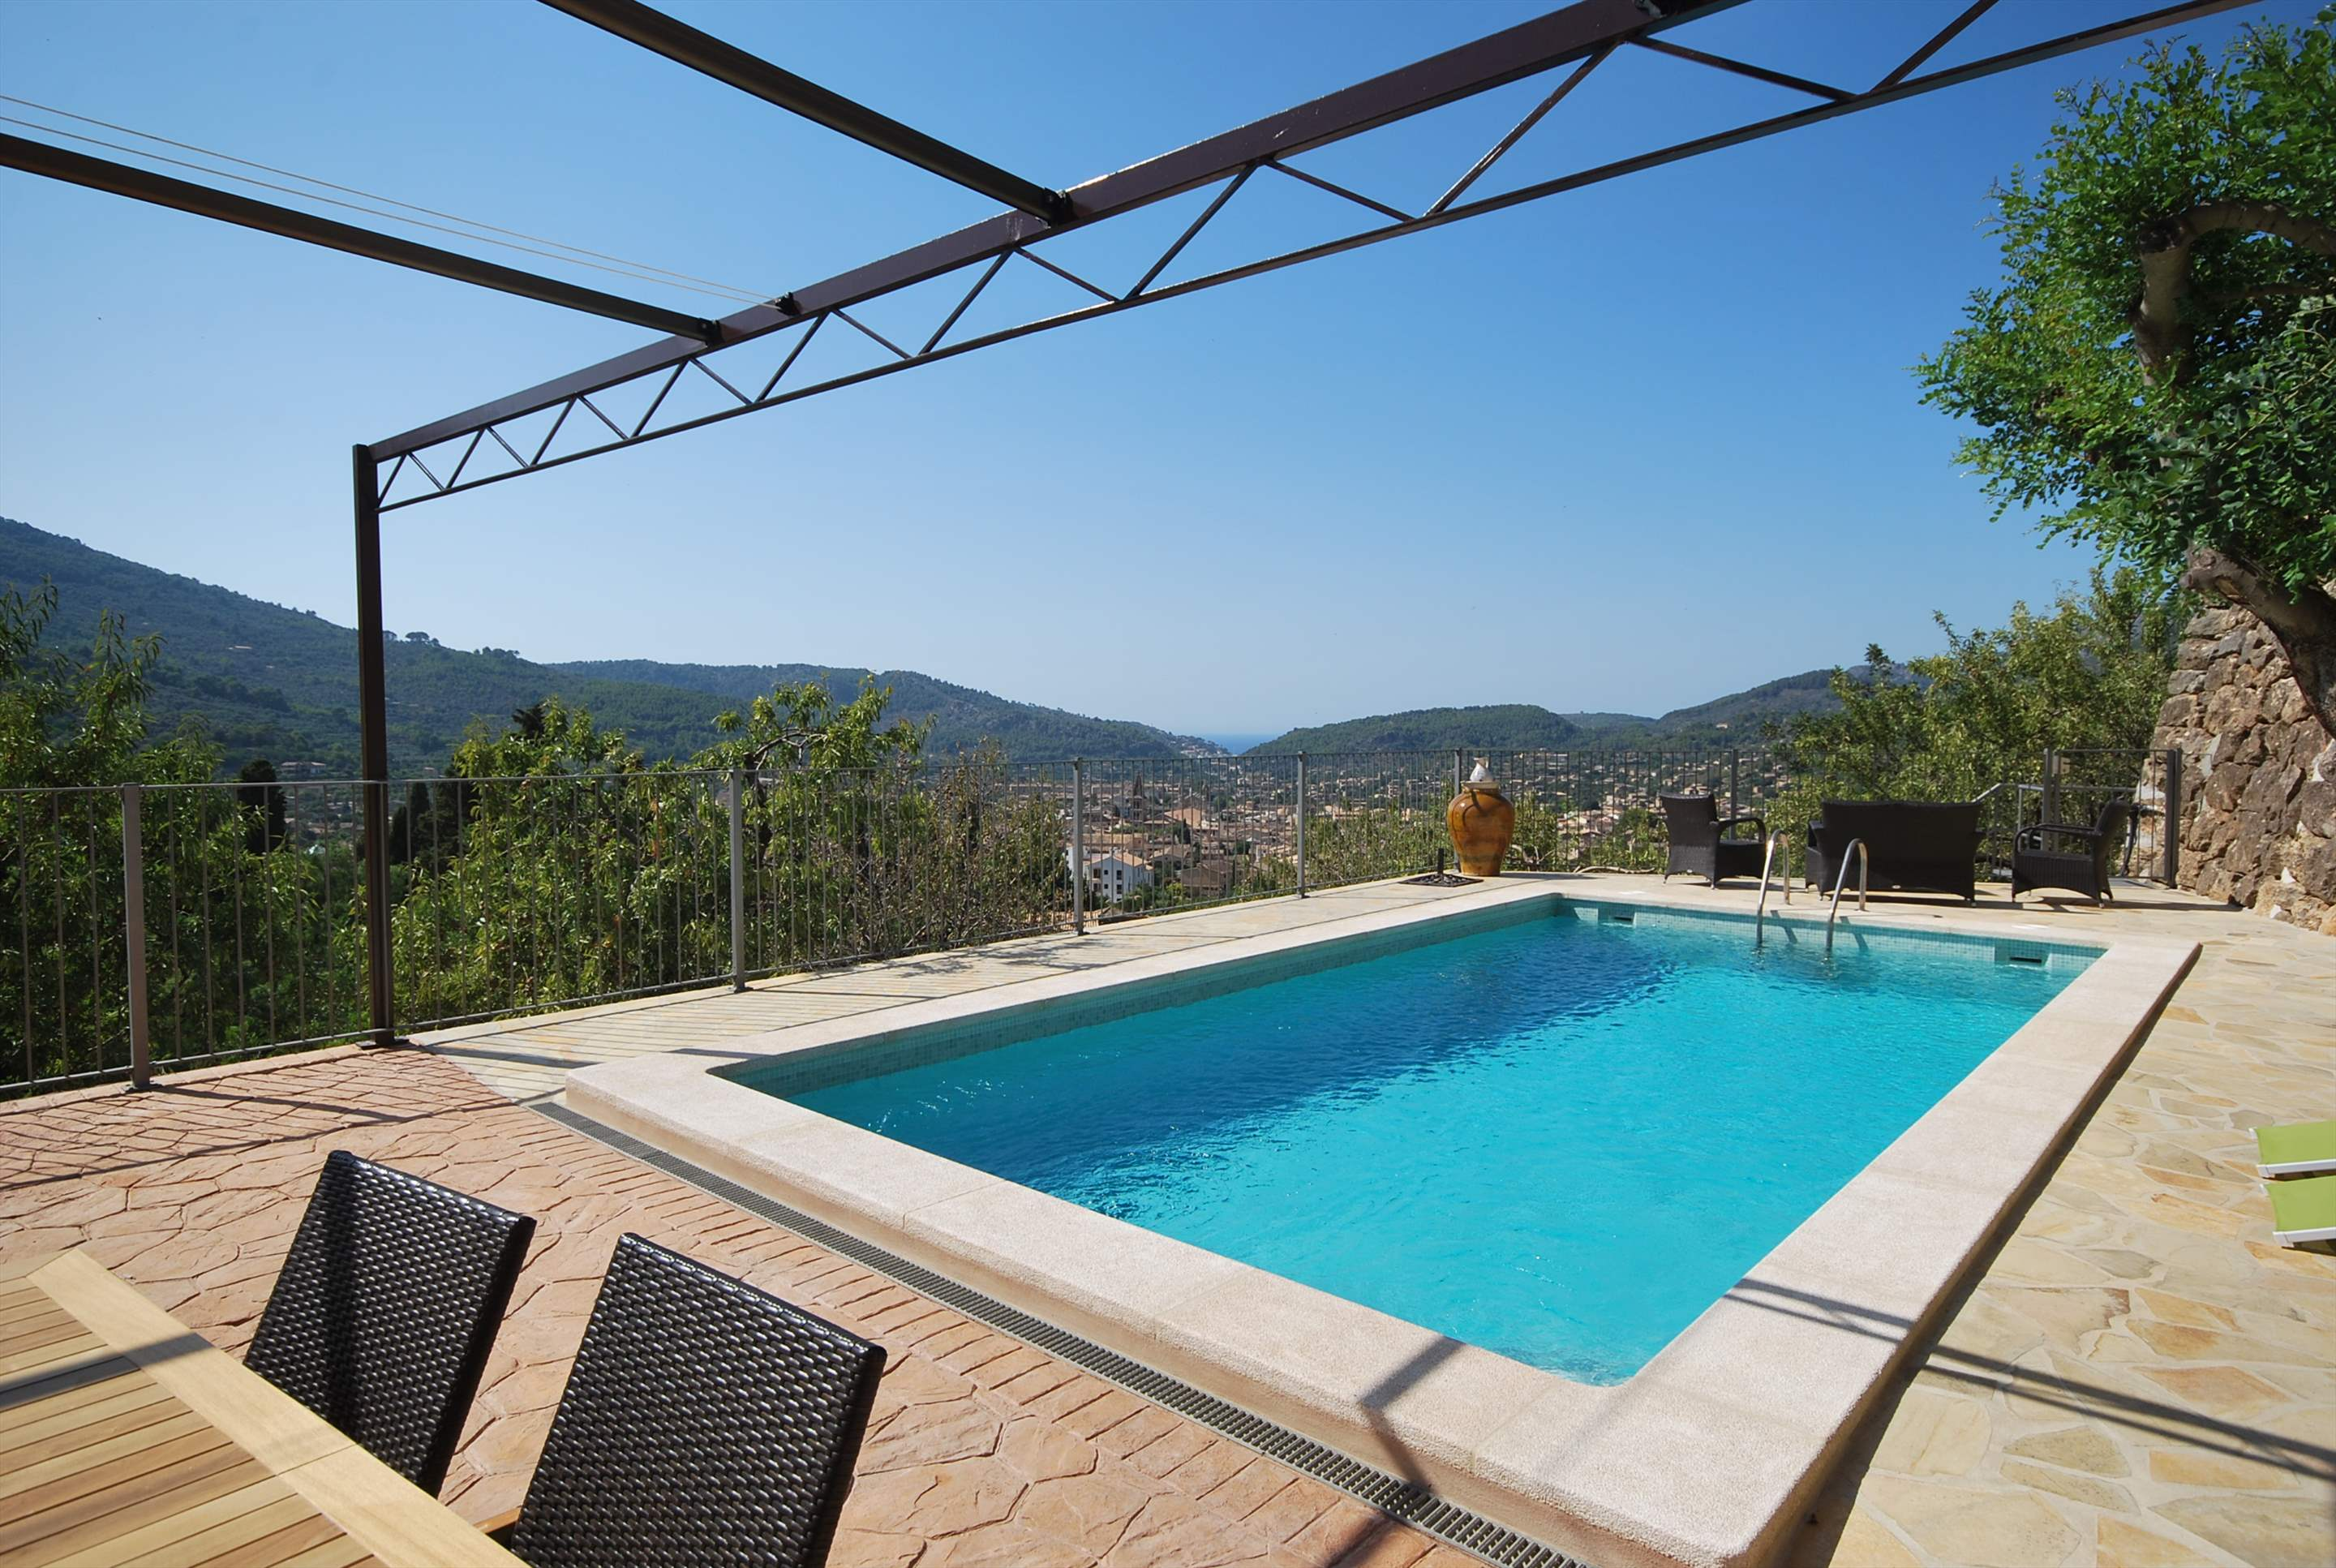 Casa Tres Cruces - SO1797, 3 bedroom villa in Soller & Deia, Majorca Photo #6